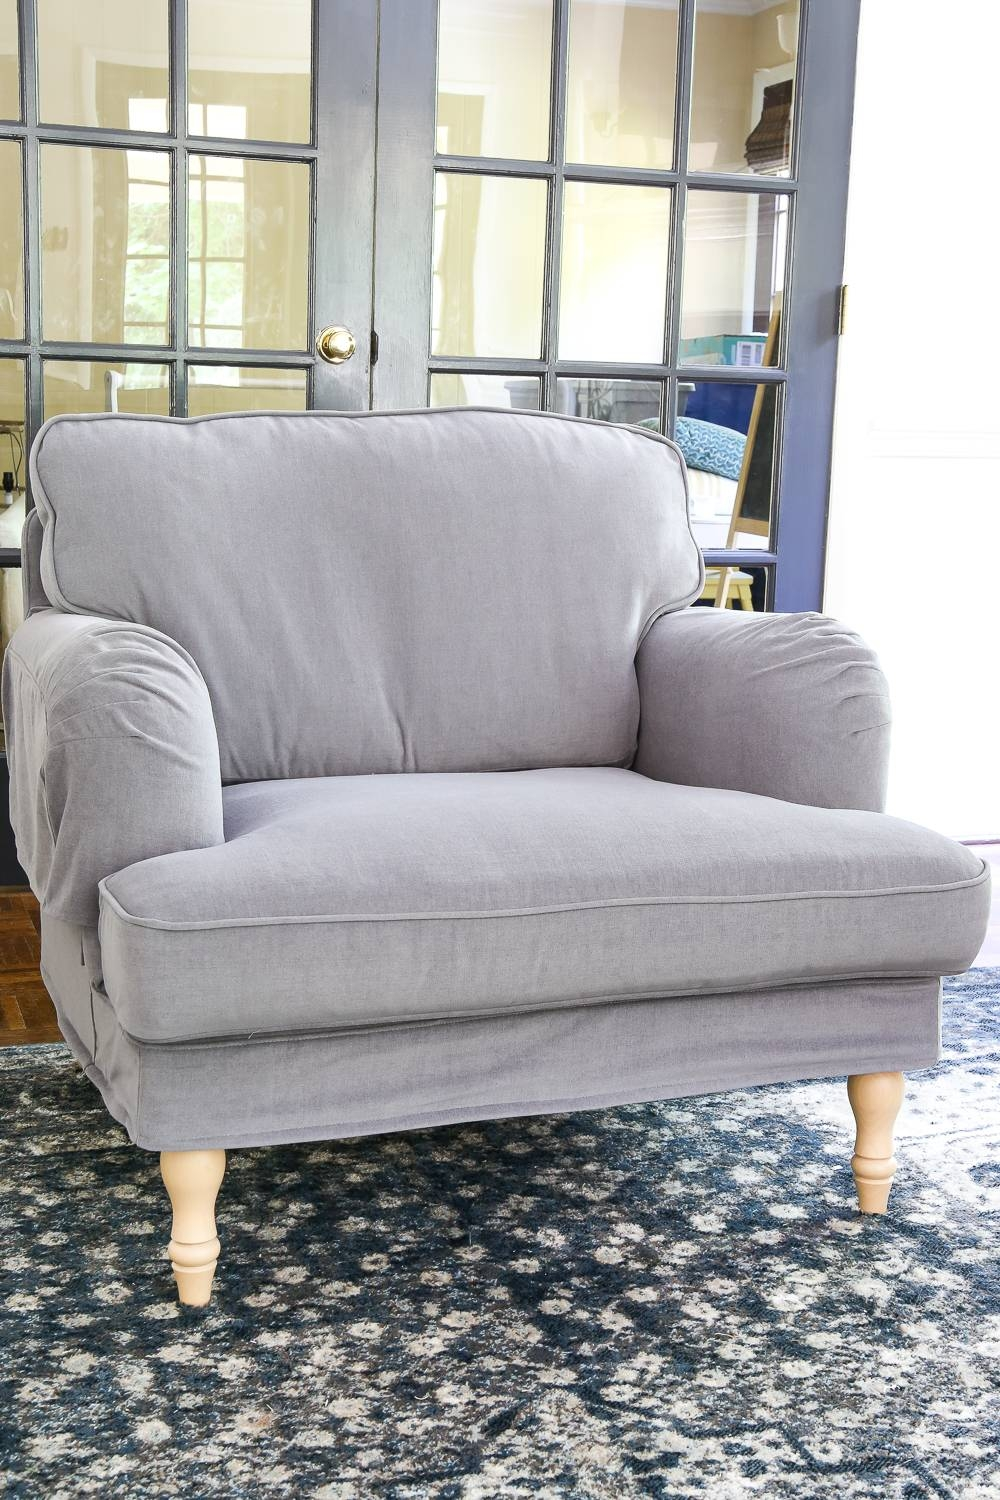 Ikea's New Sofa And Chairs And How To Keep Them Clean - Bless'er House with regard to Comfortable Sofas and Chairs (Image 8 of 30)